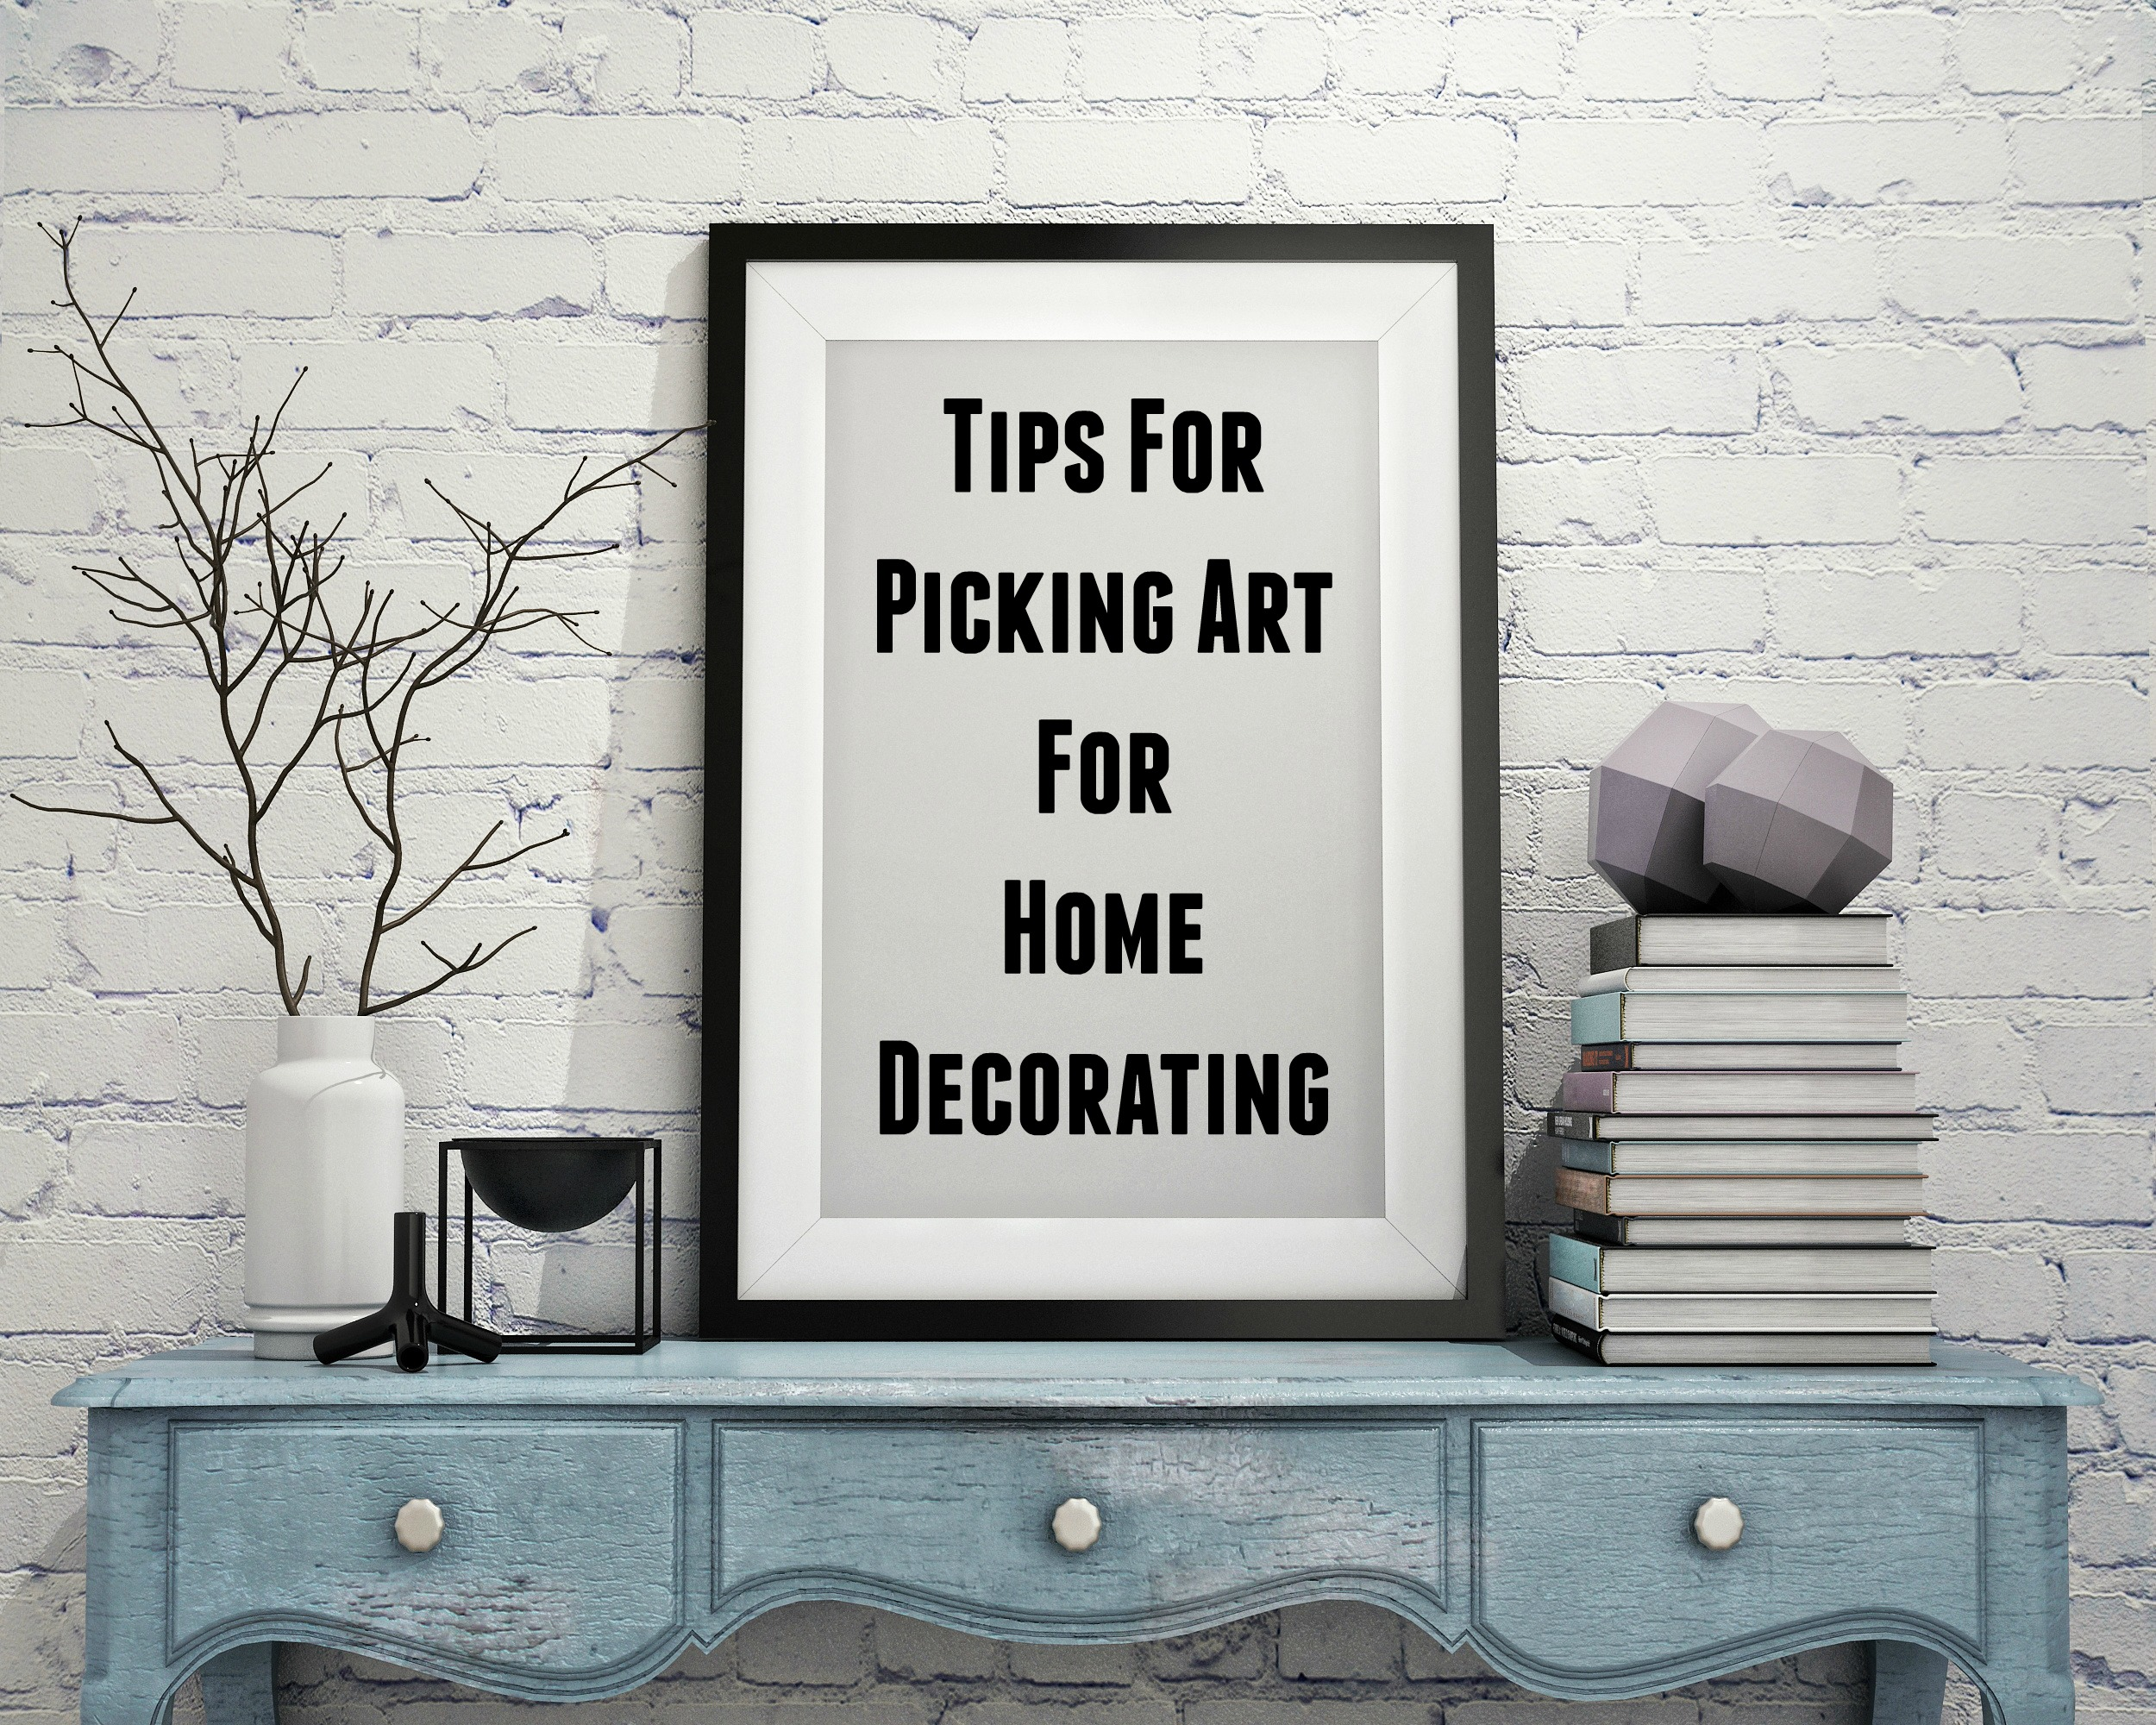 Tips For Picking Art For Home Decorating